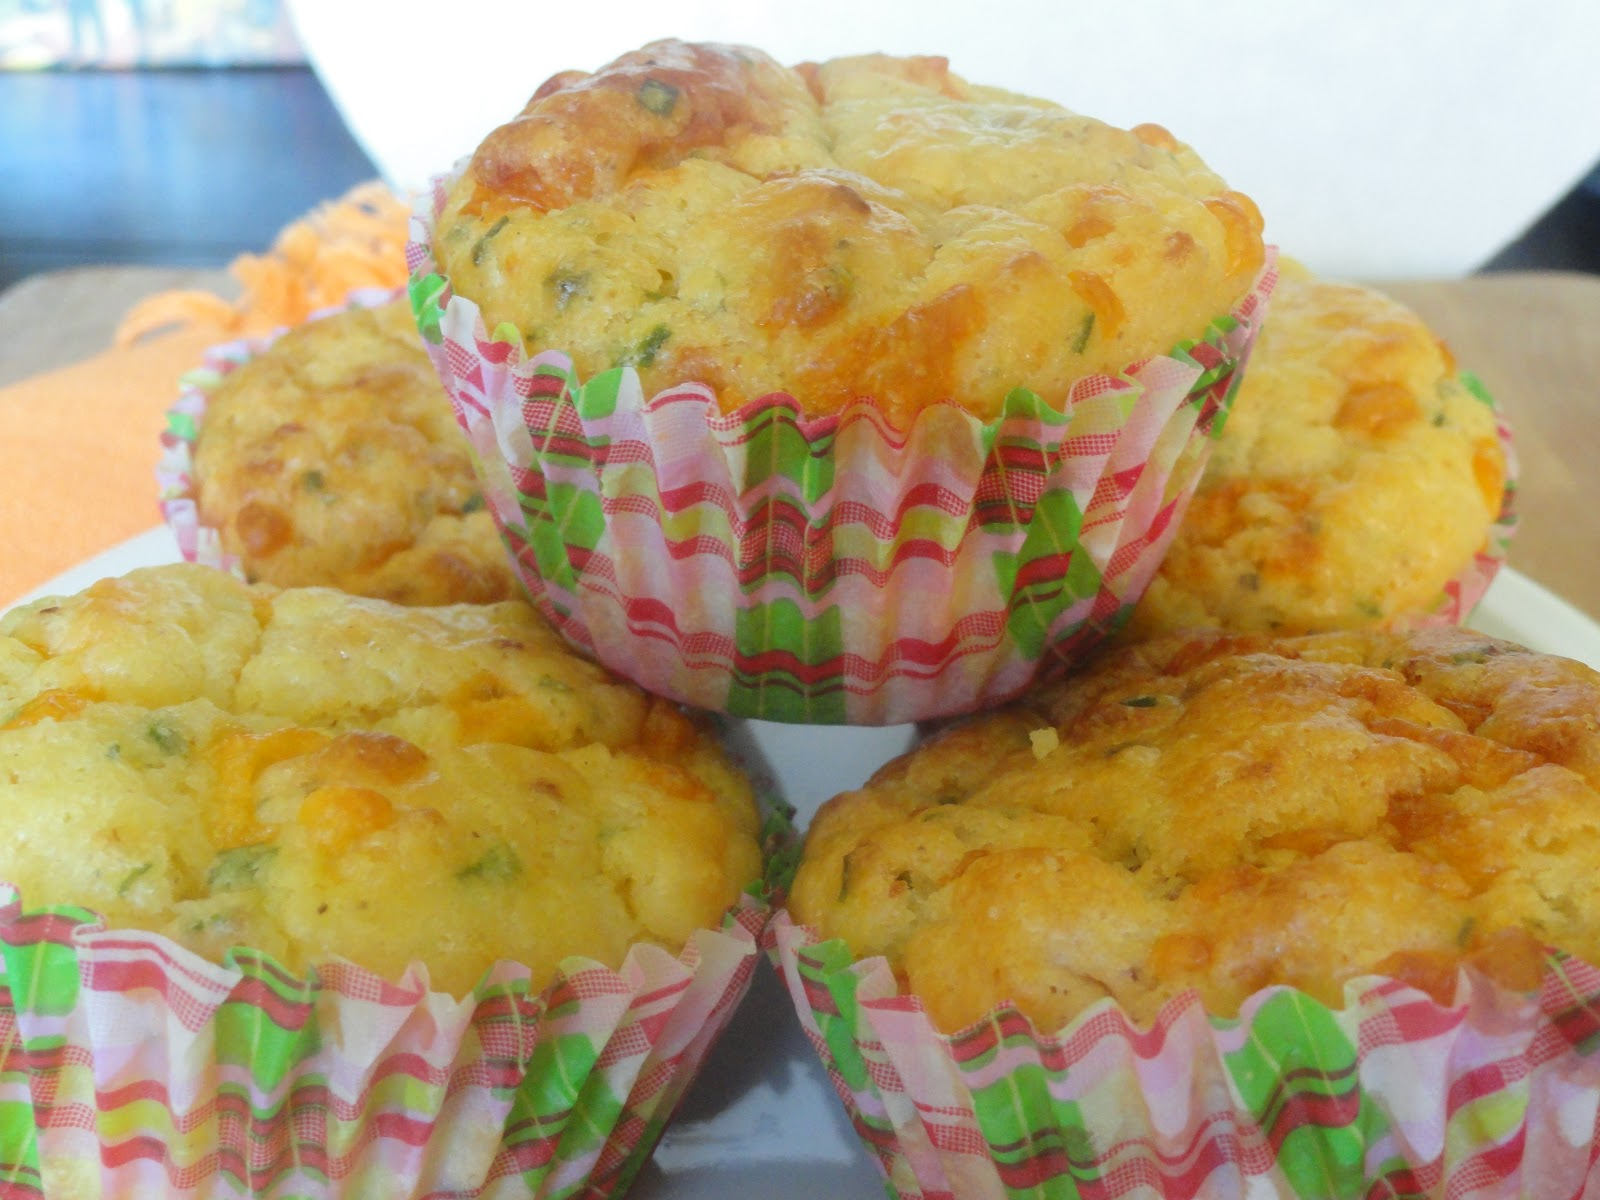 Angie's Big Love of Food: Bacon Cheese & Chive Breakfast Muffins